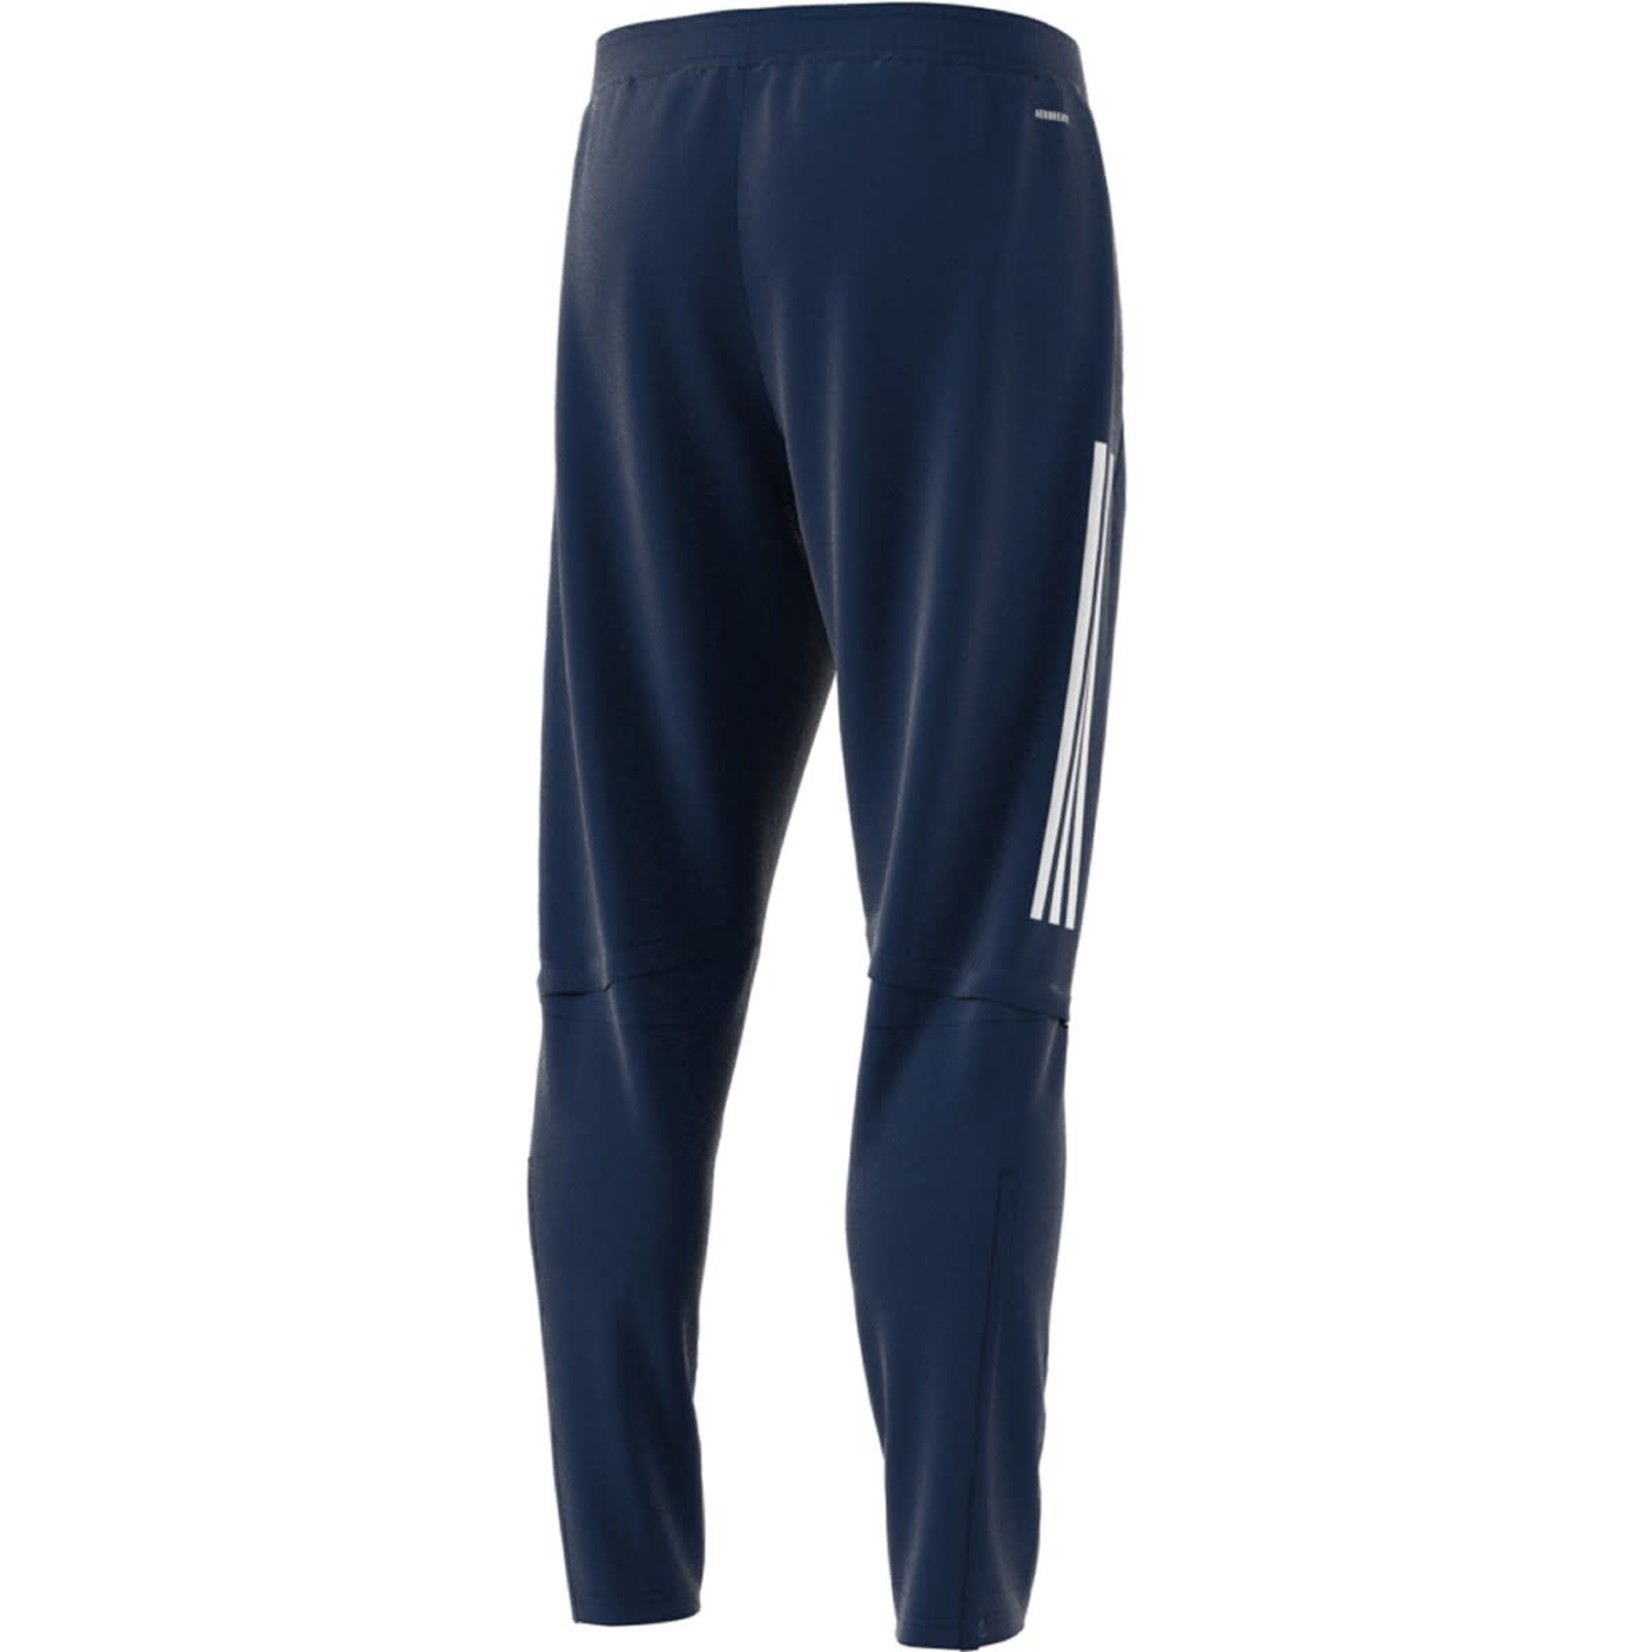 ADIDAS CONDIVO 20 TRAINING PANTS YOUTH